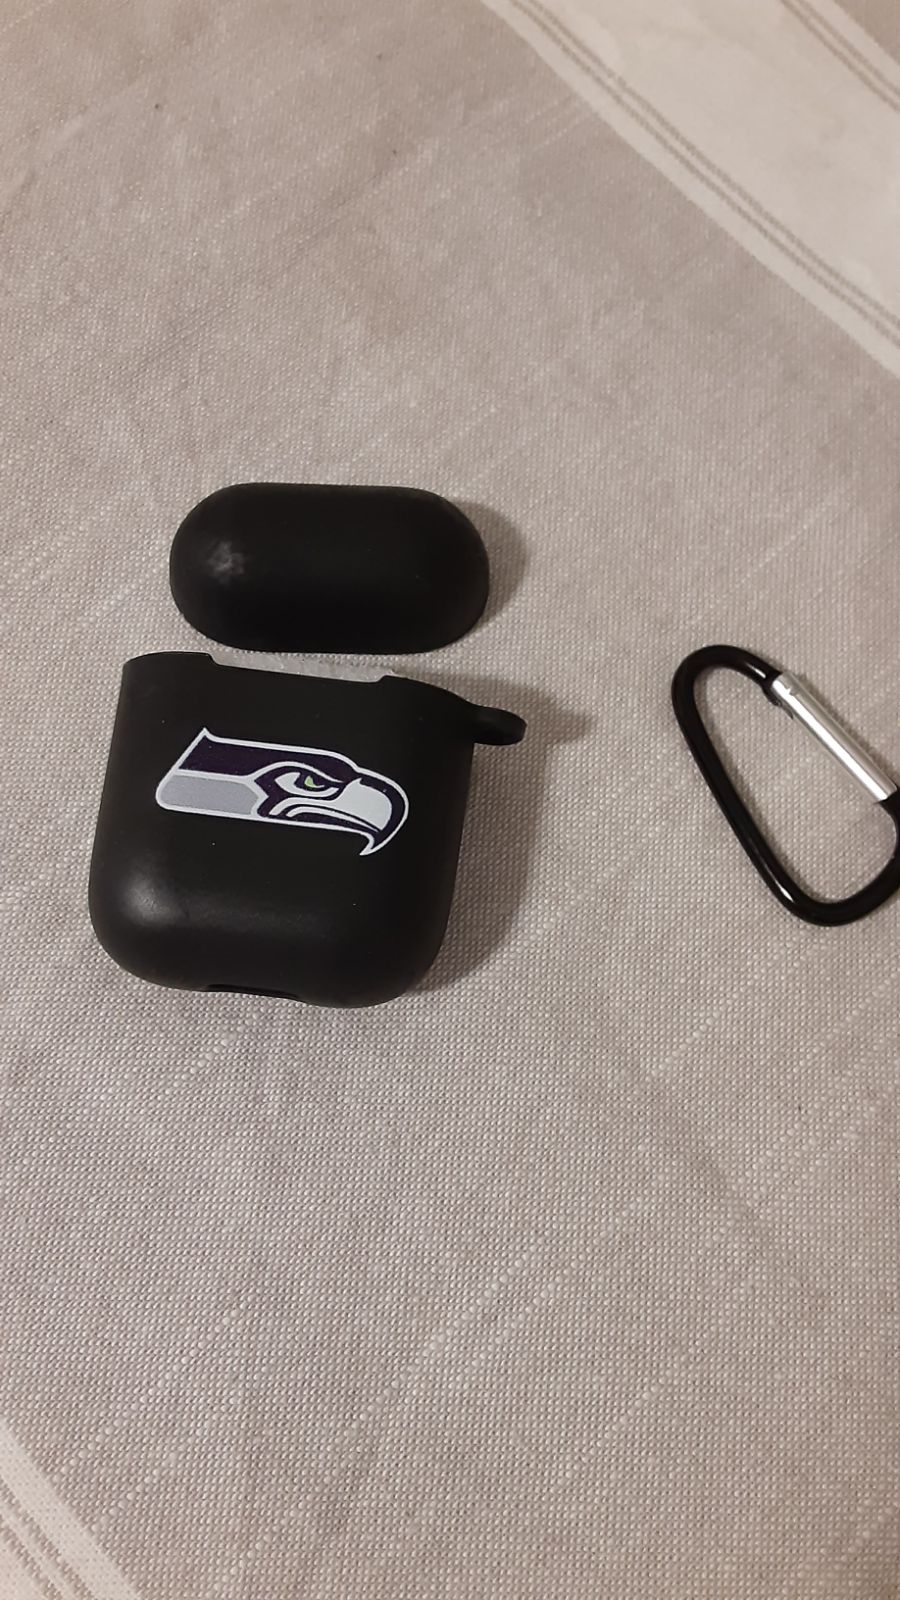 Seahawks Airpod case